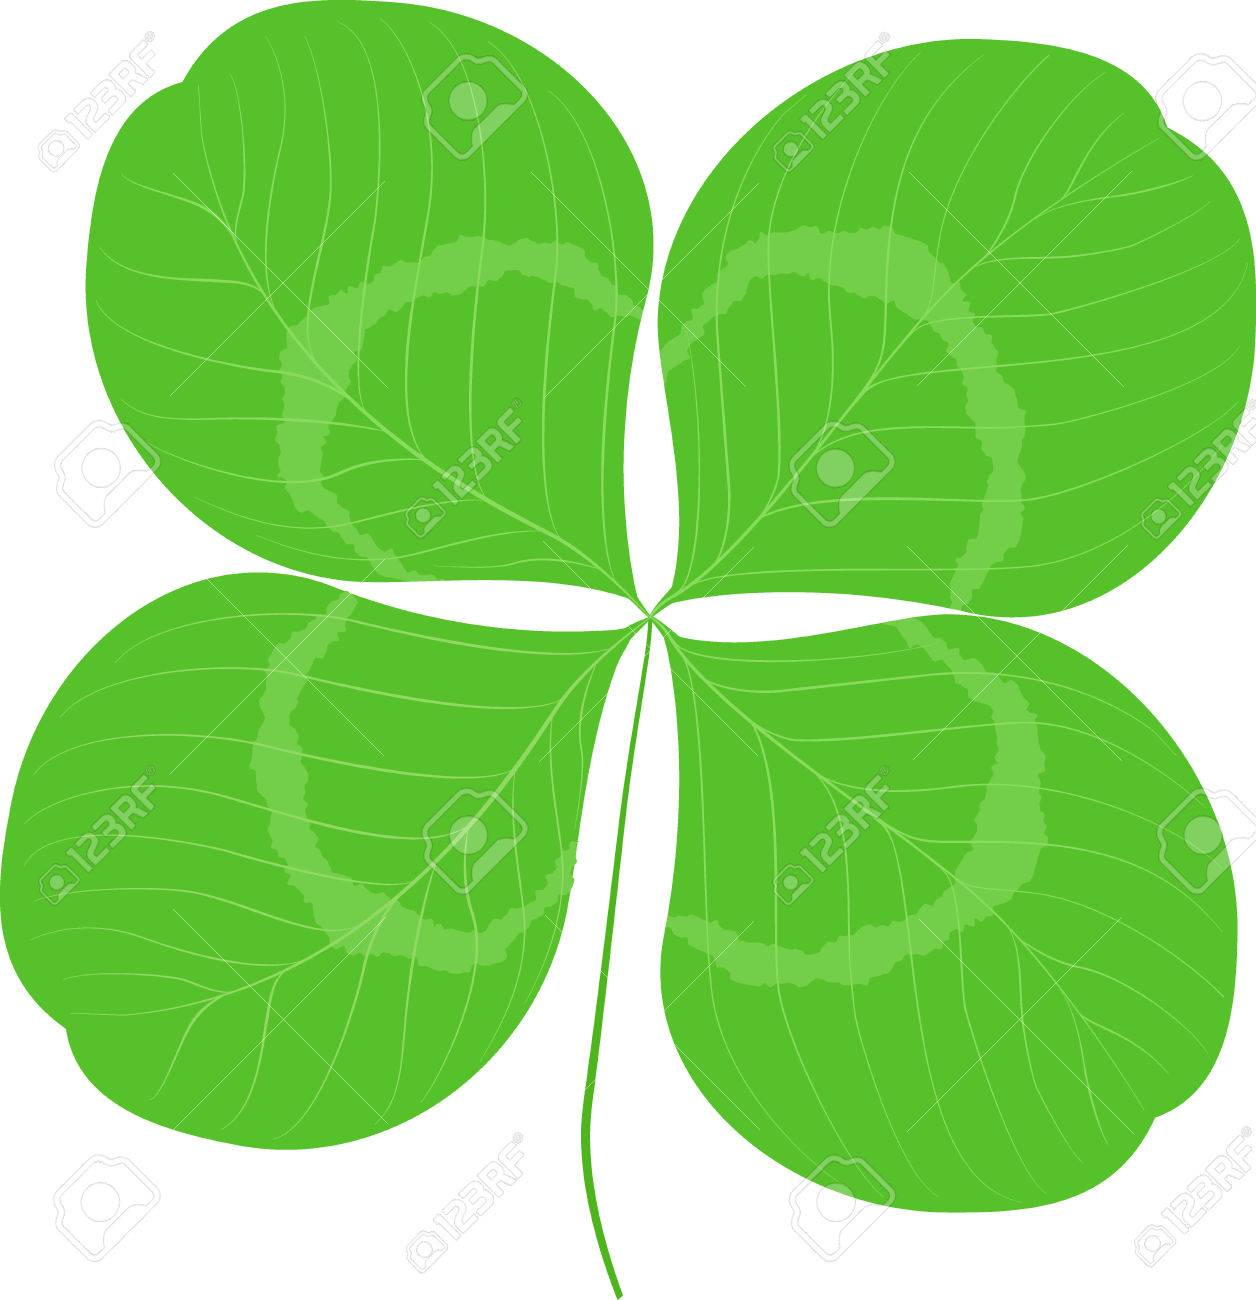 quatrefoil leaf clover sign icon good luck sign saint patrick day symbol ecology - Clover Color